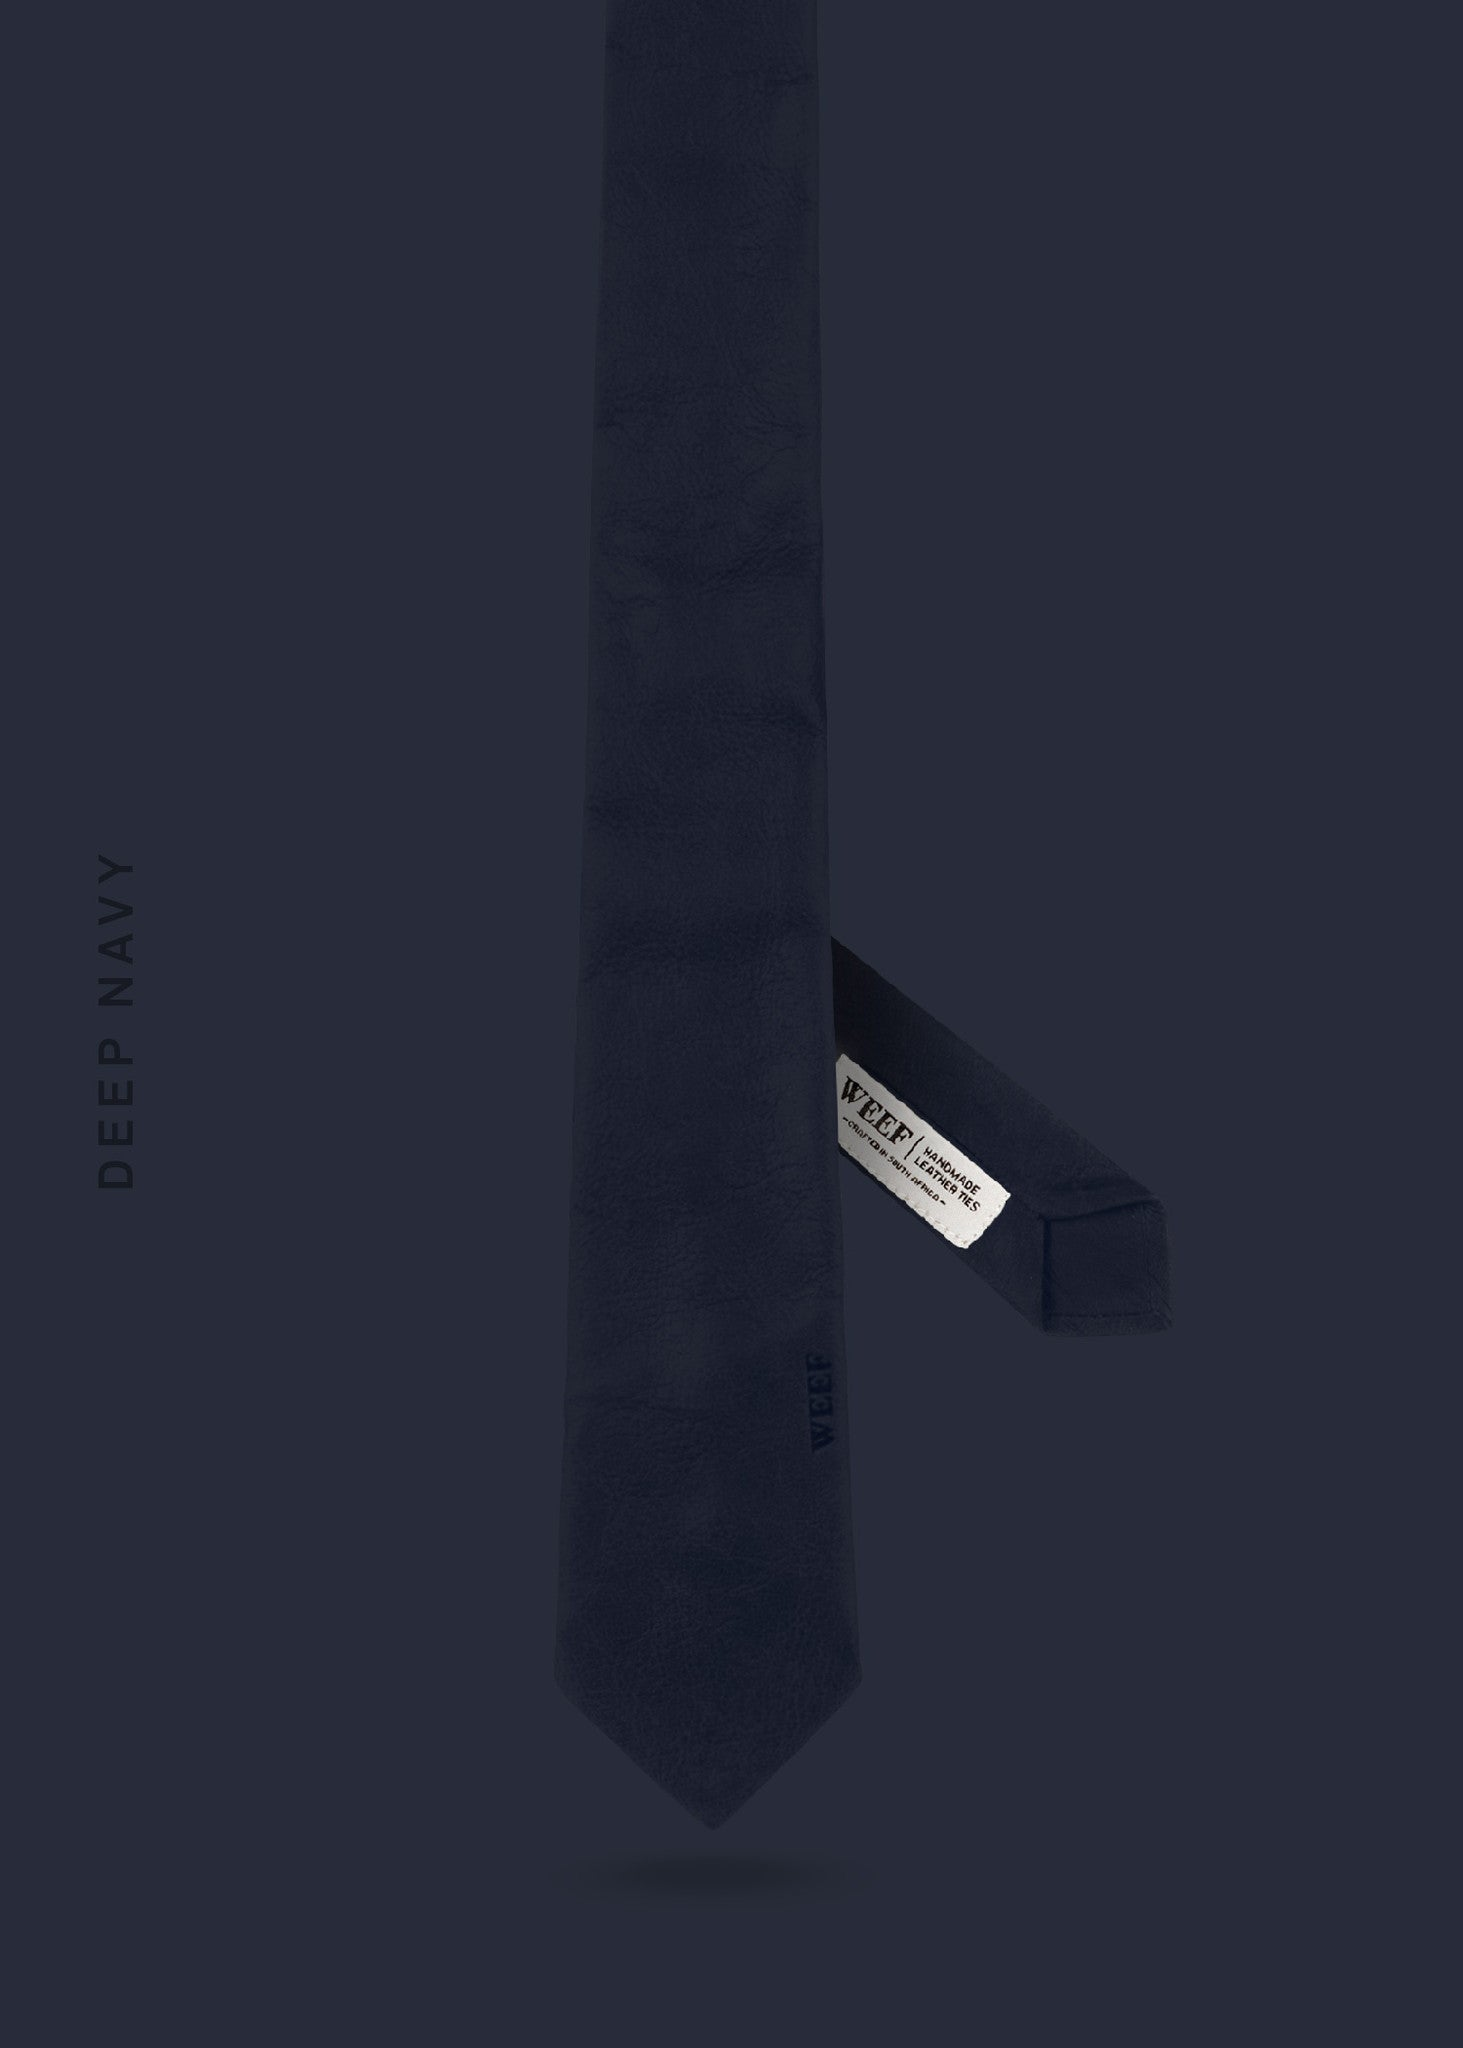 This deep navy WEEF handmade leather tie is a great present or gift idea for dapper and stylish gentlemen for fathers day, valentines day or Christmas.